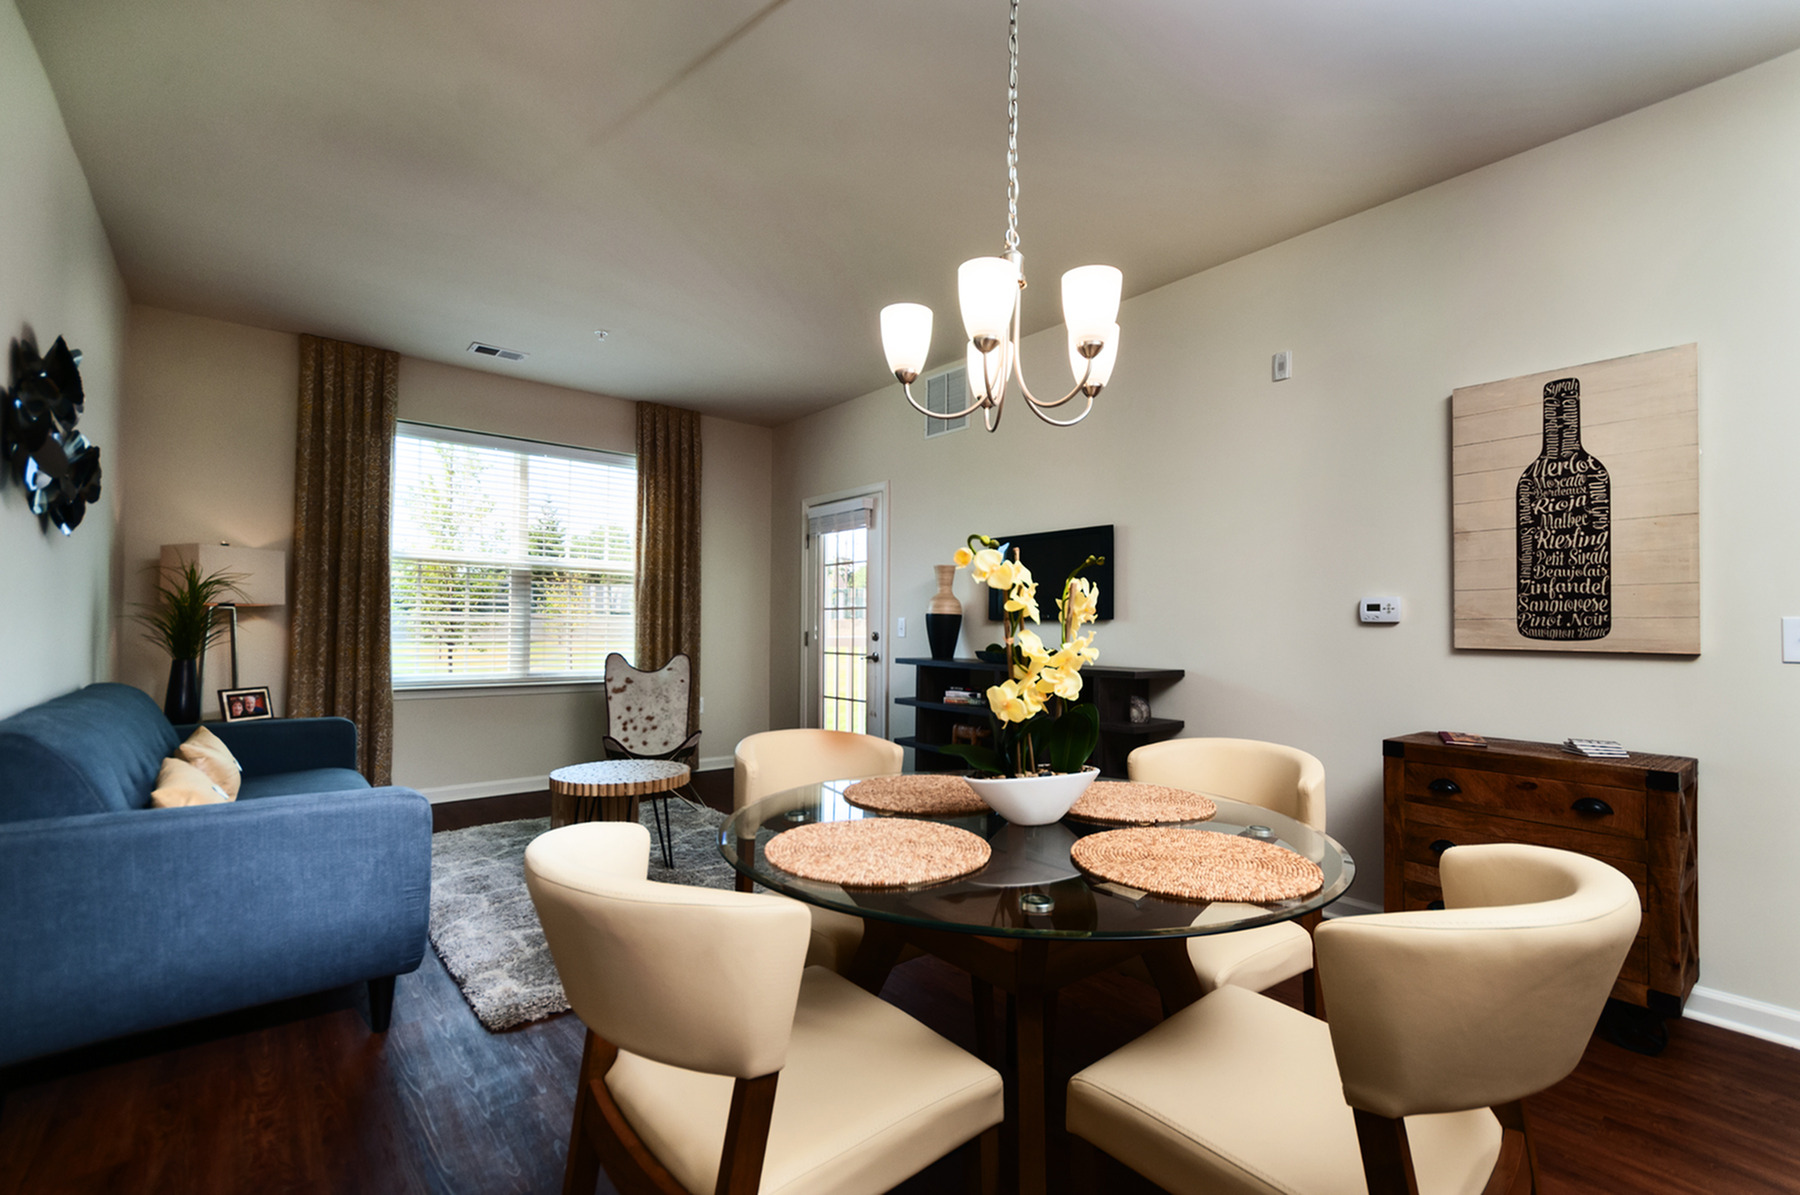 Spacious Interiors in Rich Color Schemes